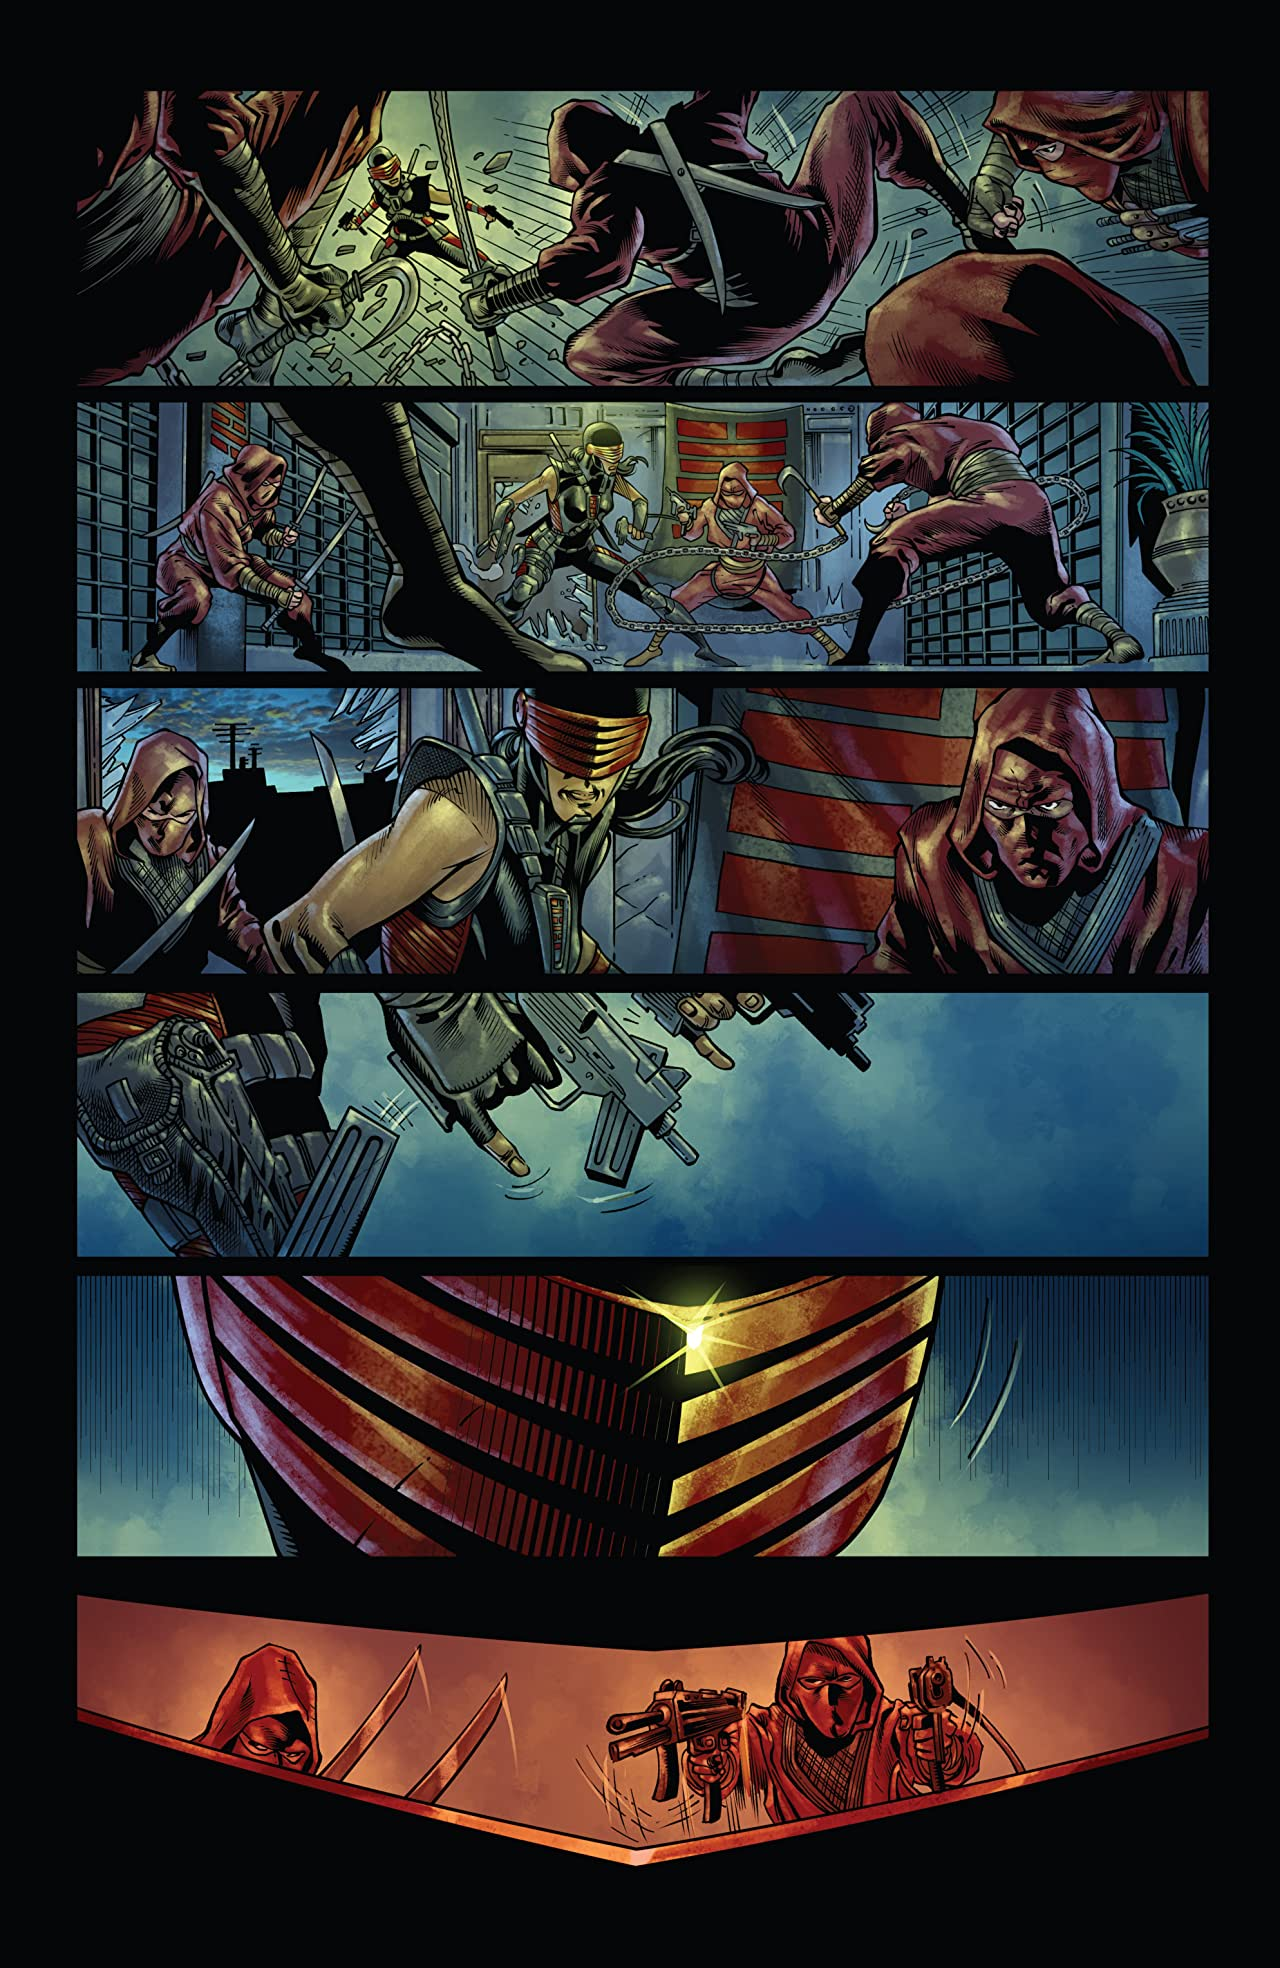 G.I. Joe: A Real American Hero #248